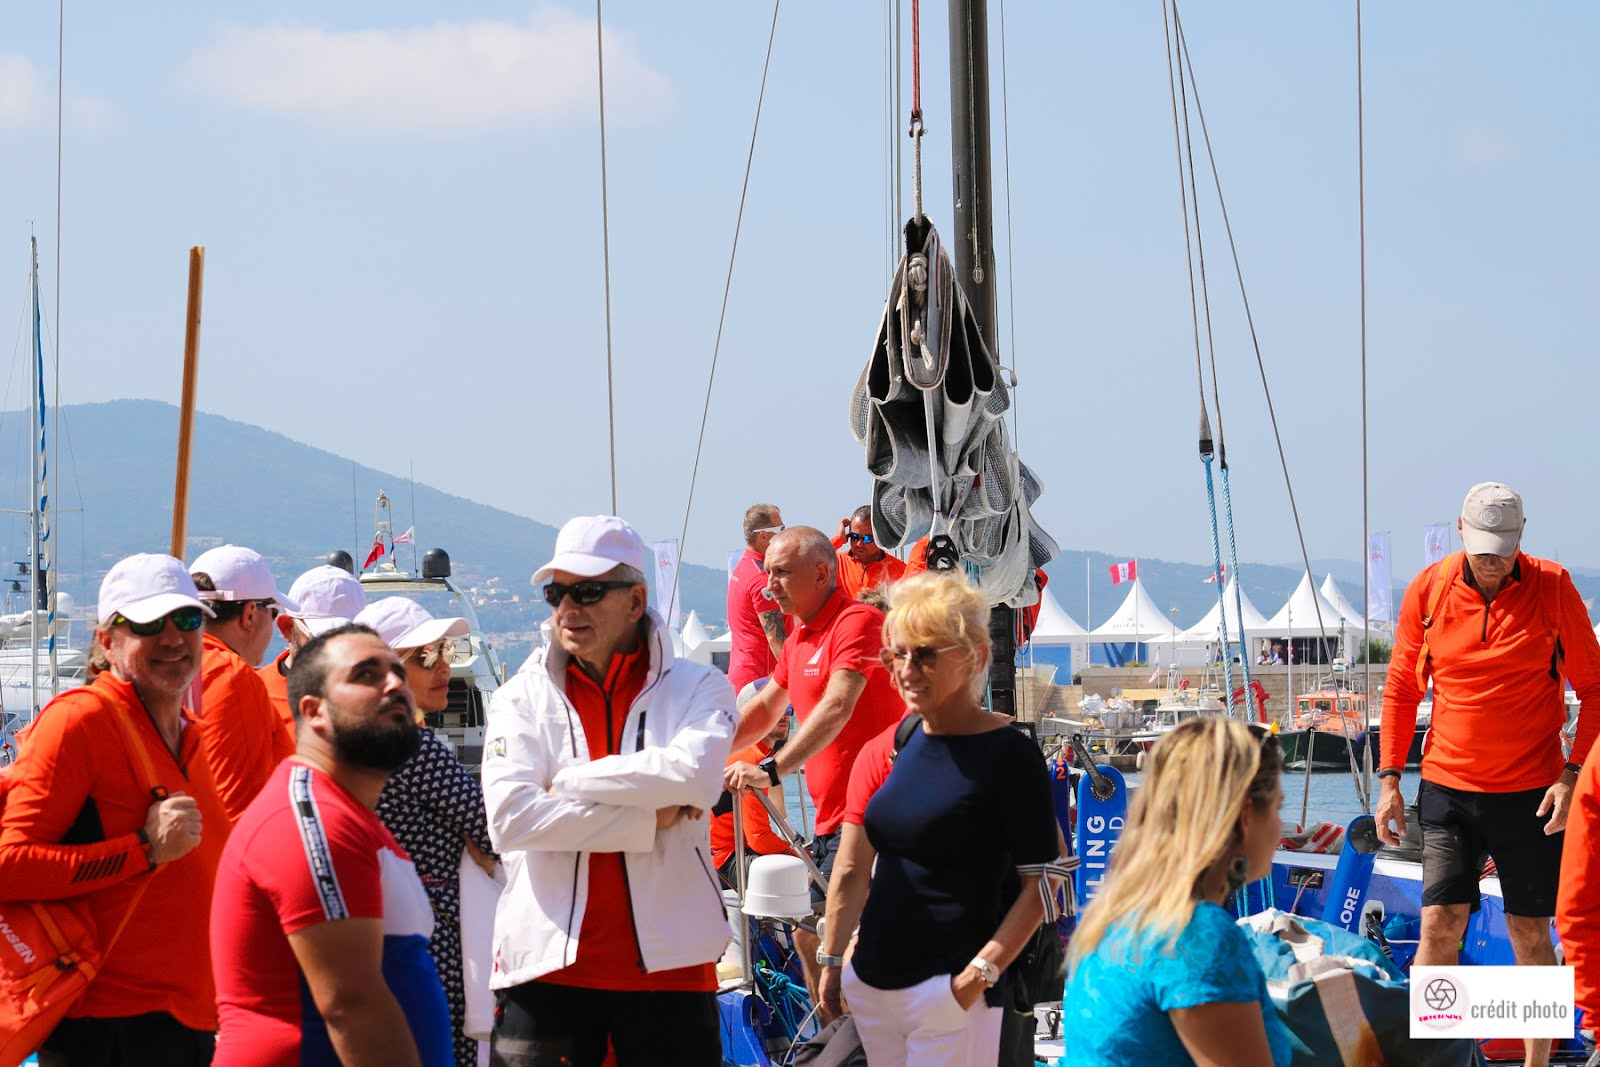 Sailing Poland Yacht Club á Saint Tropez 2019